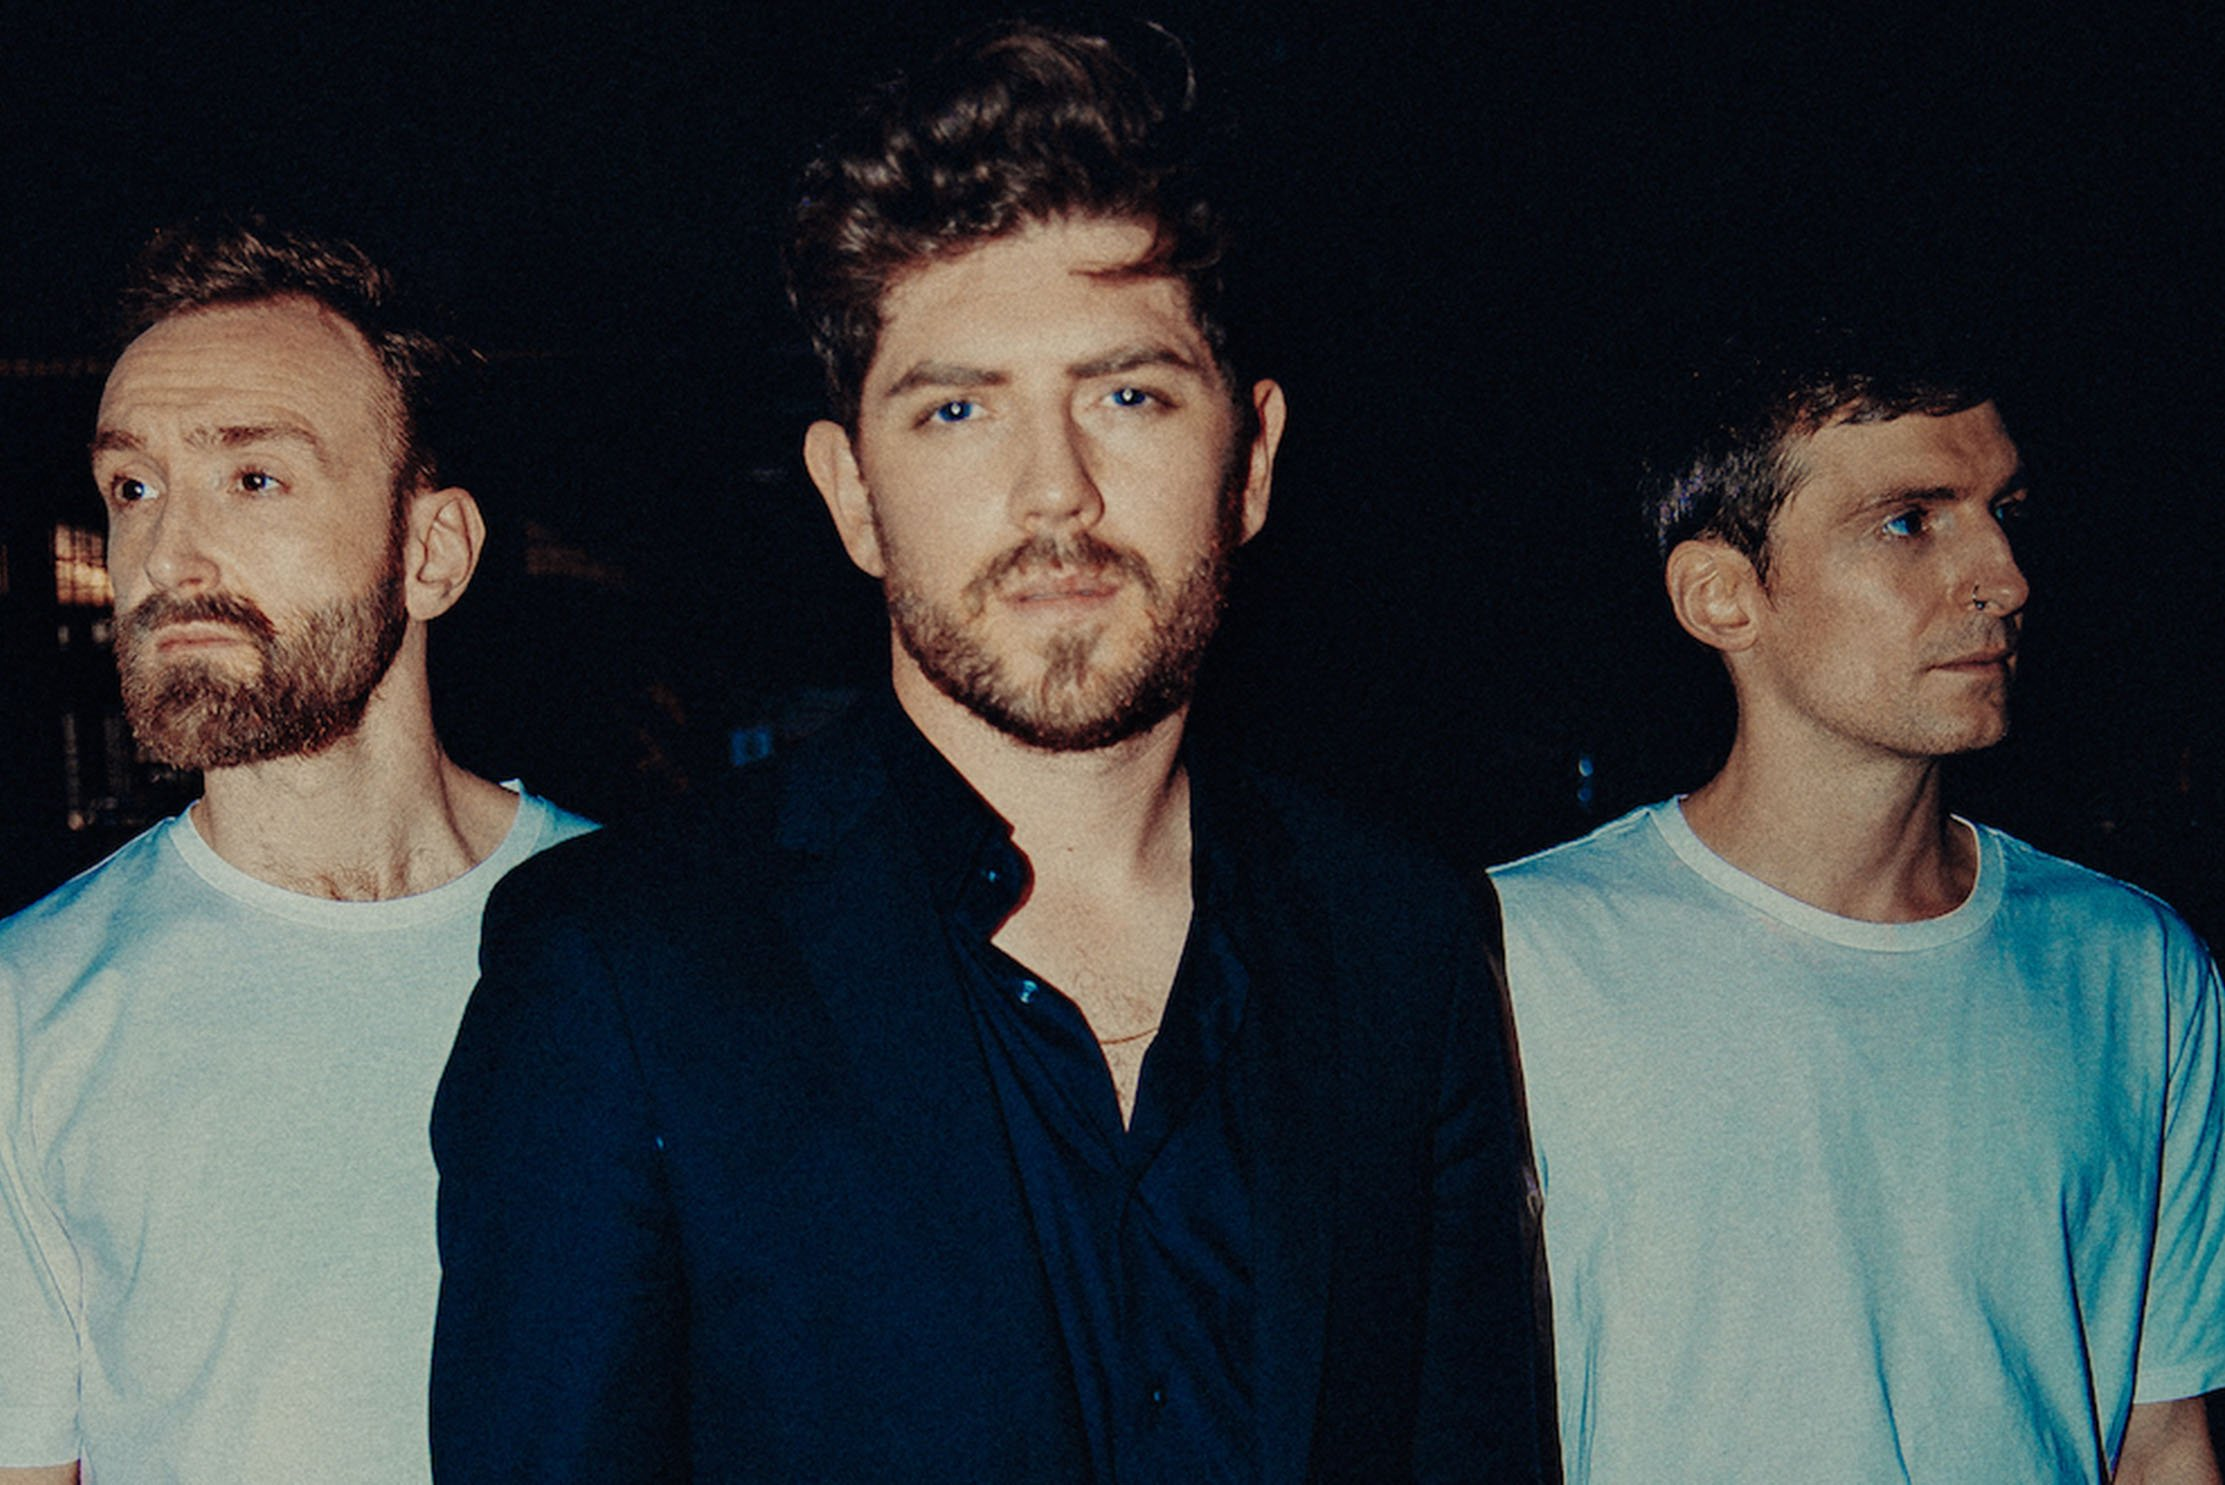 Twin Atlantic singer Sam McTrusty talks about their new album, ahead of the band's show at Brighton's Concorde 2 on Weds 18 March 2020